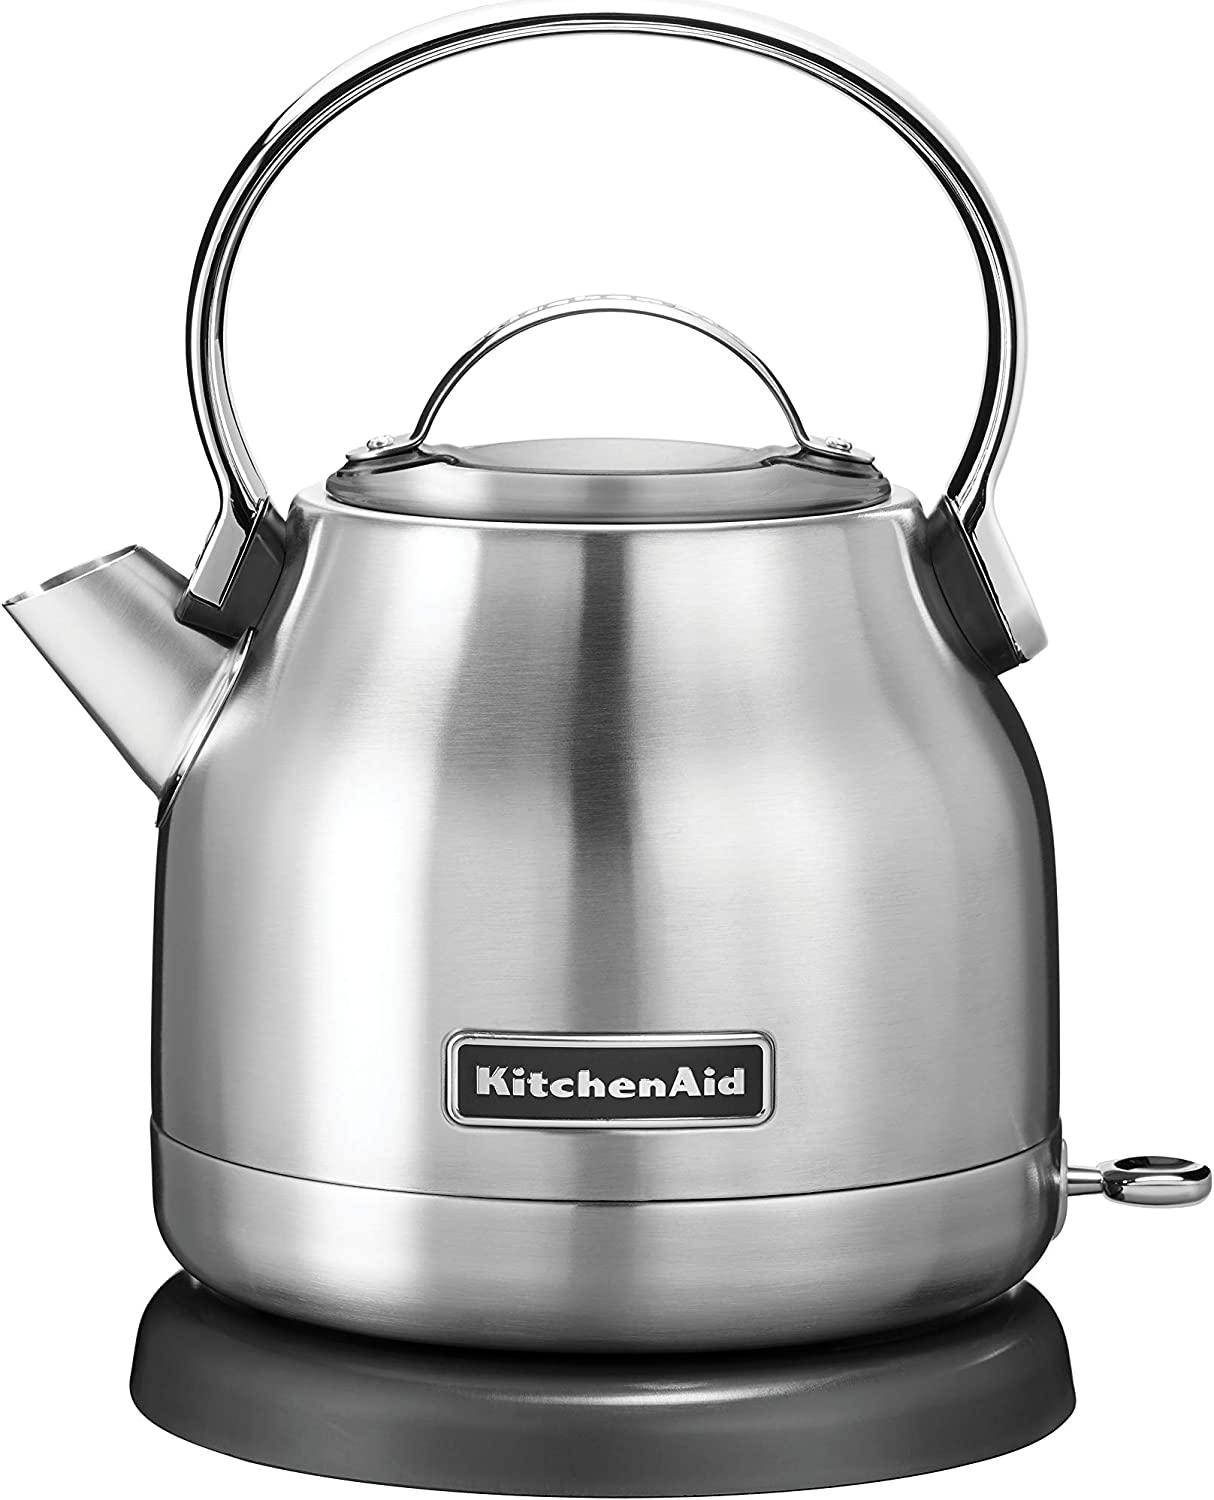 KitchenAid KEK1222SX 1.25-Liter Electric Kettle